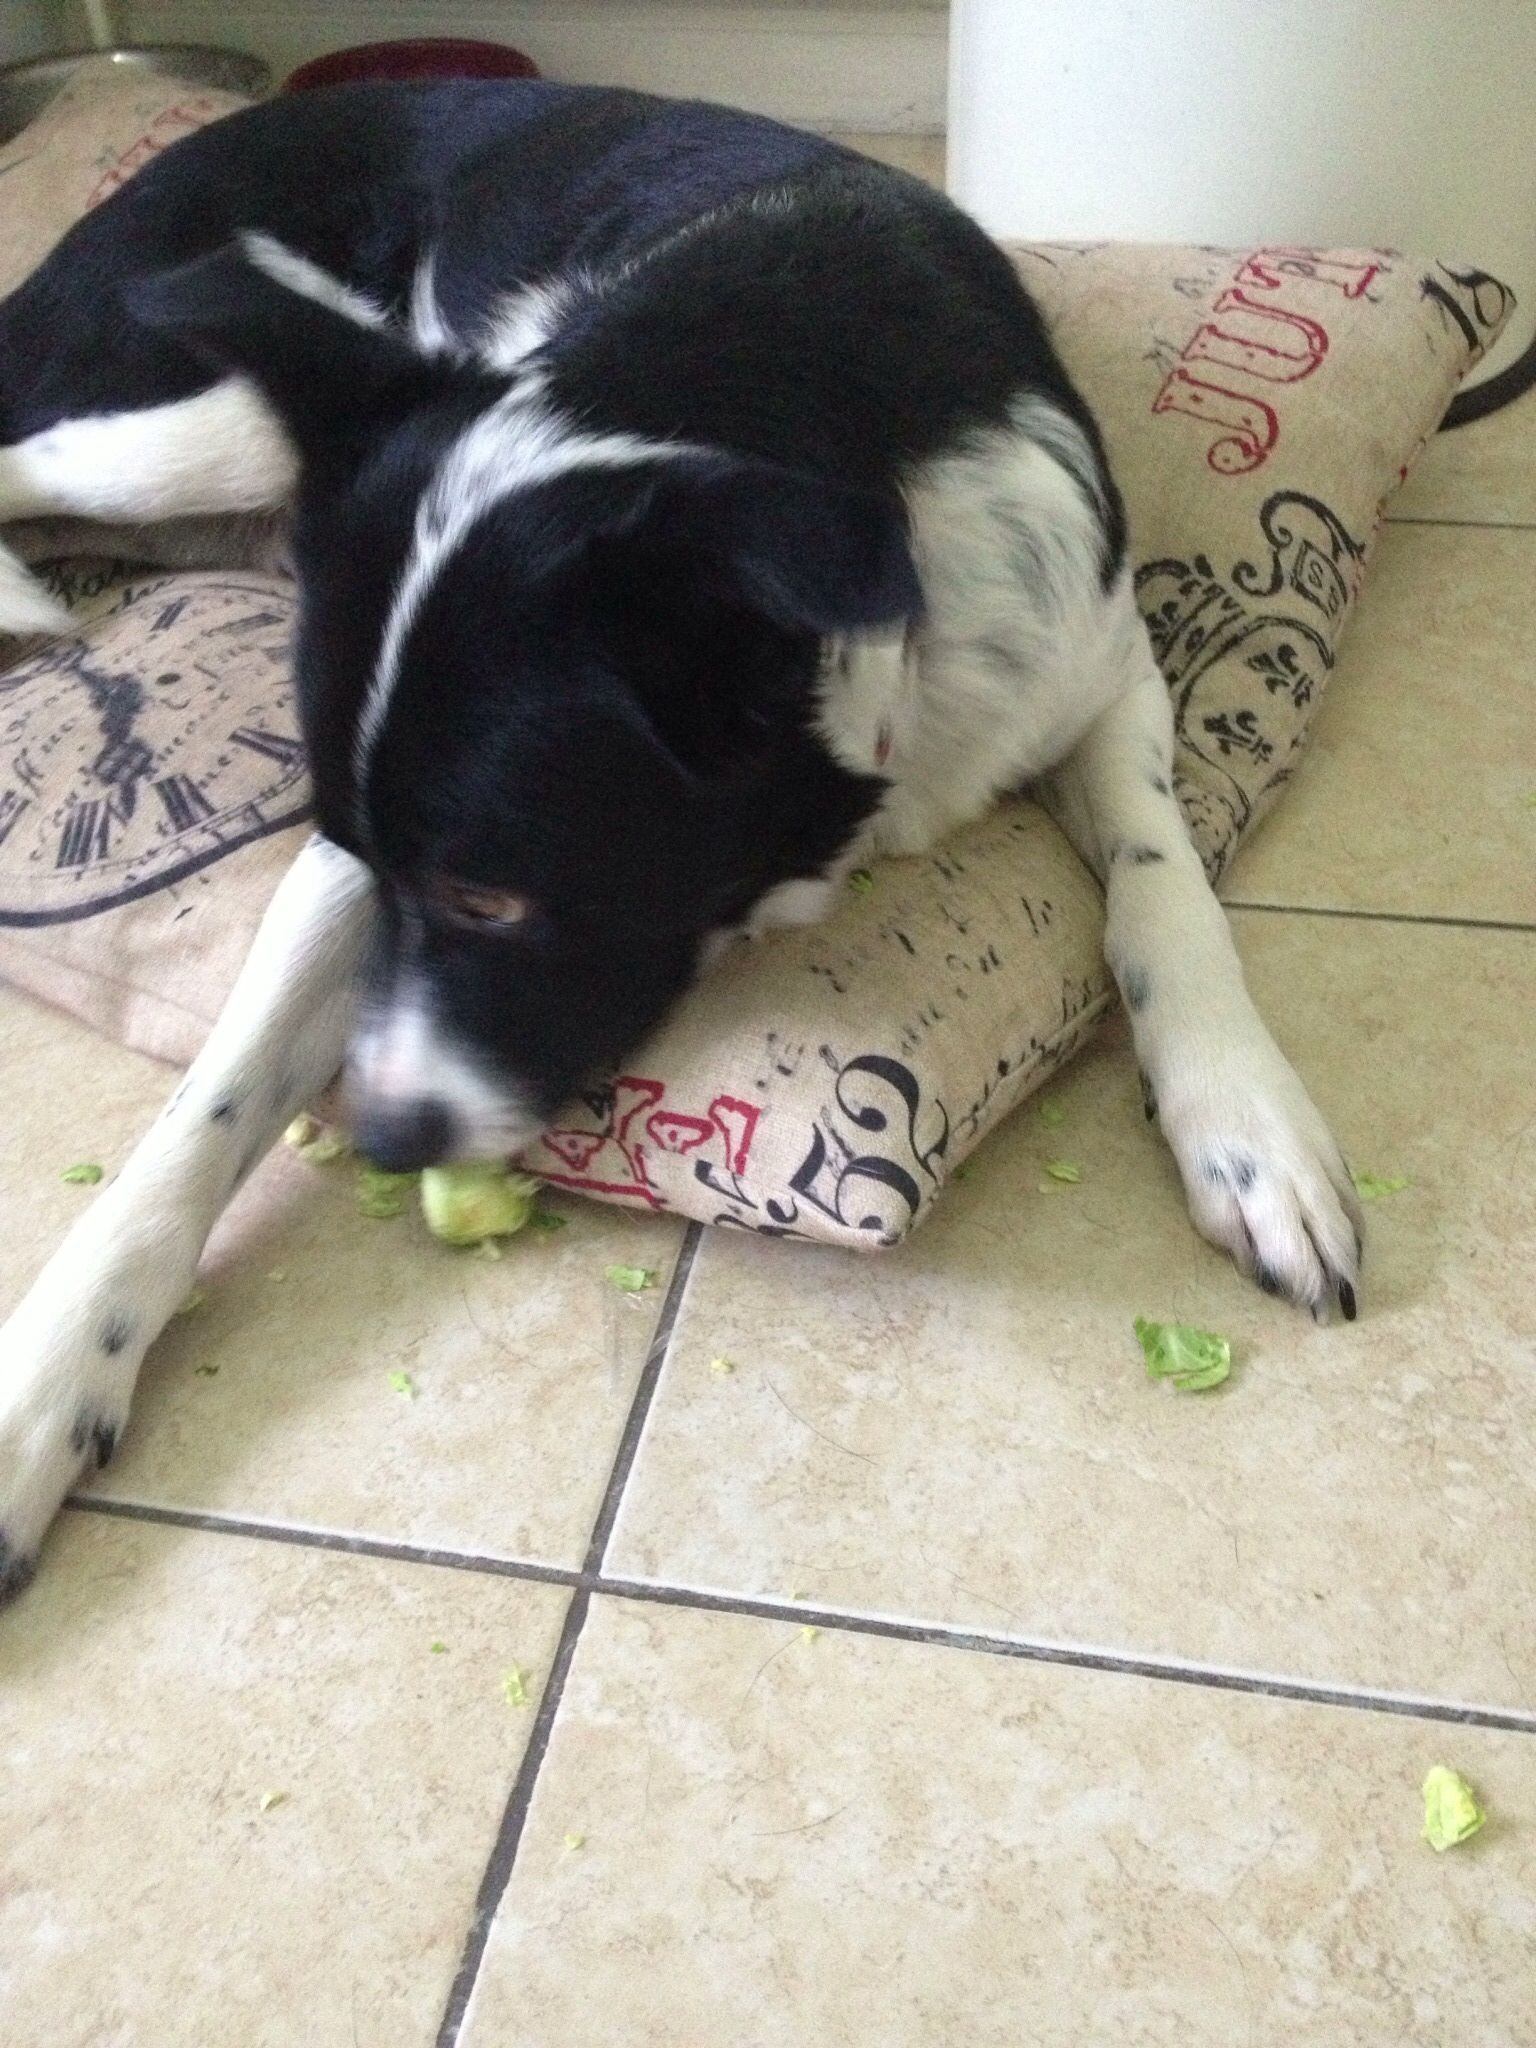 Same boarder collie, next Christmas, this time a guilty Brussel sprout